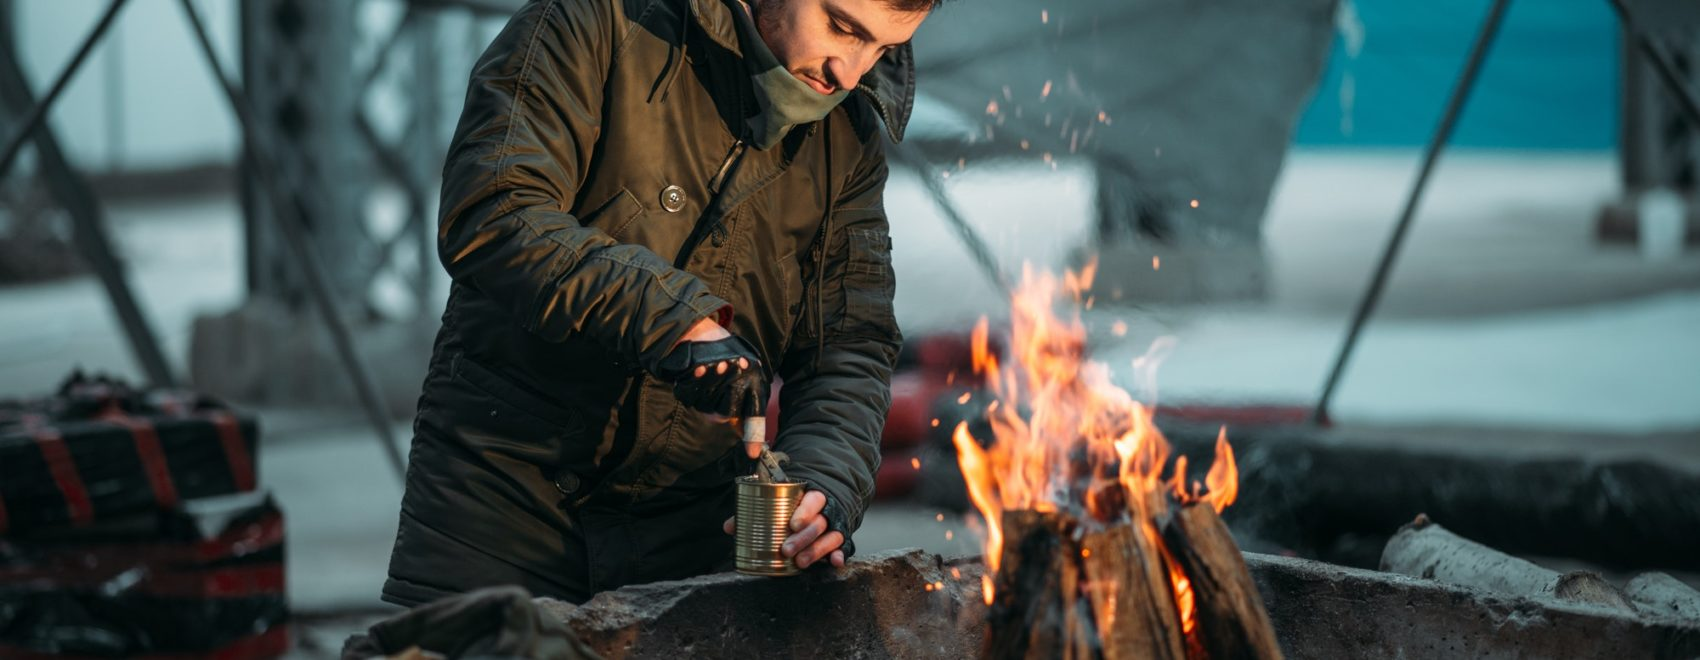 Financial Survival for Doomsday Preppers person cooking canned food on fire